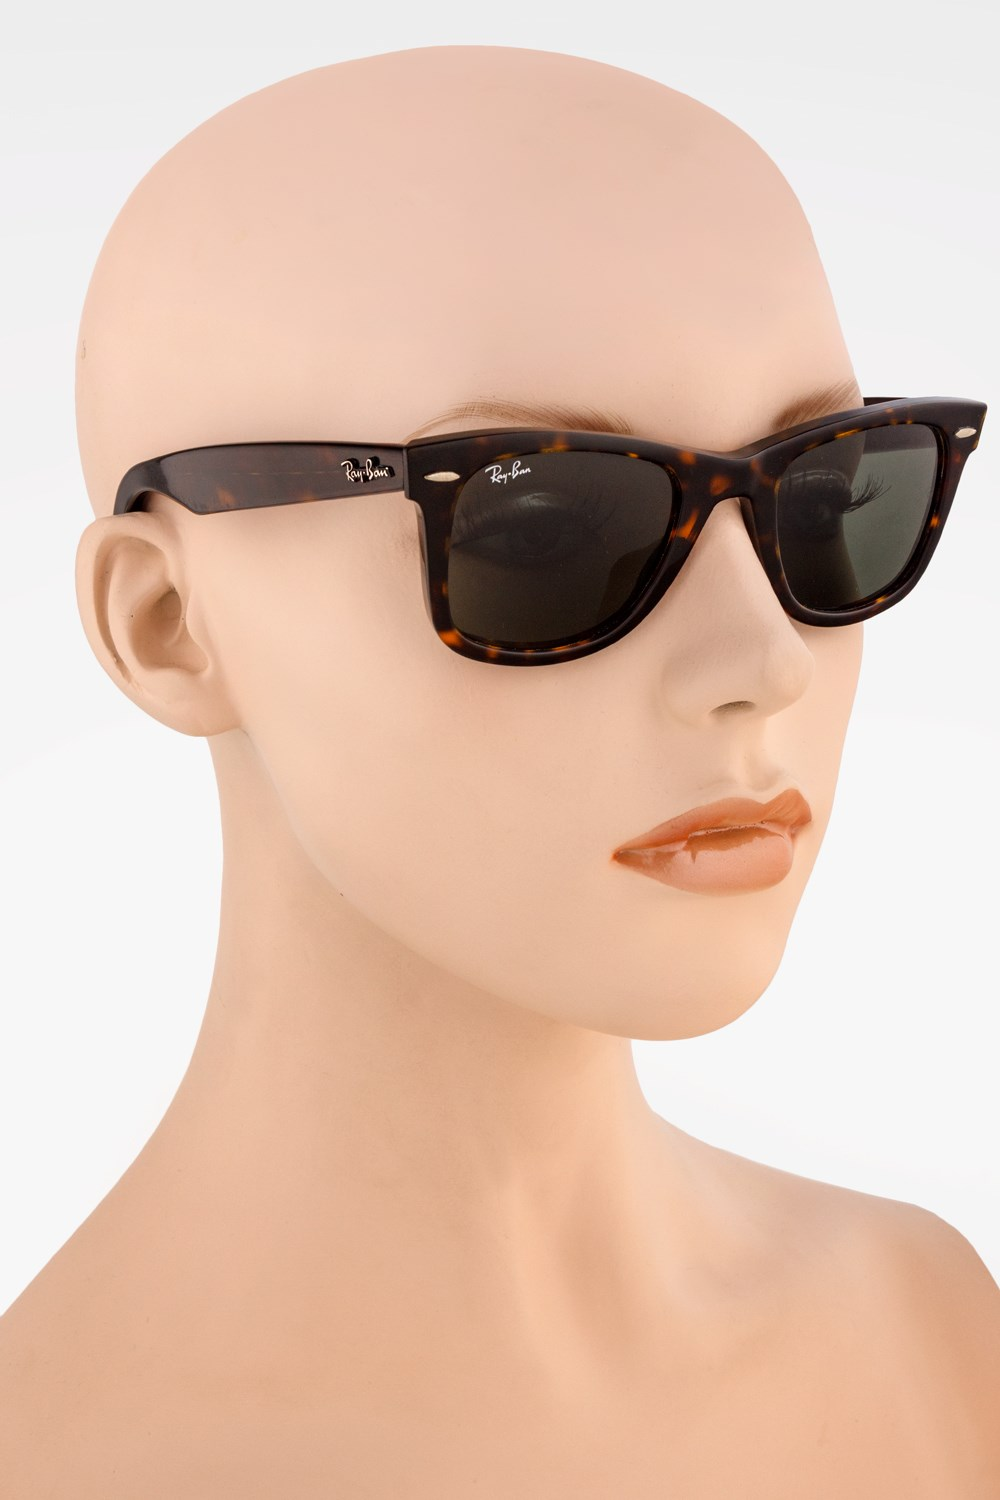 47b5924523d06 RB2140 Original Wayfarer Tortoise-Shell Acetate Sunglasses